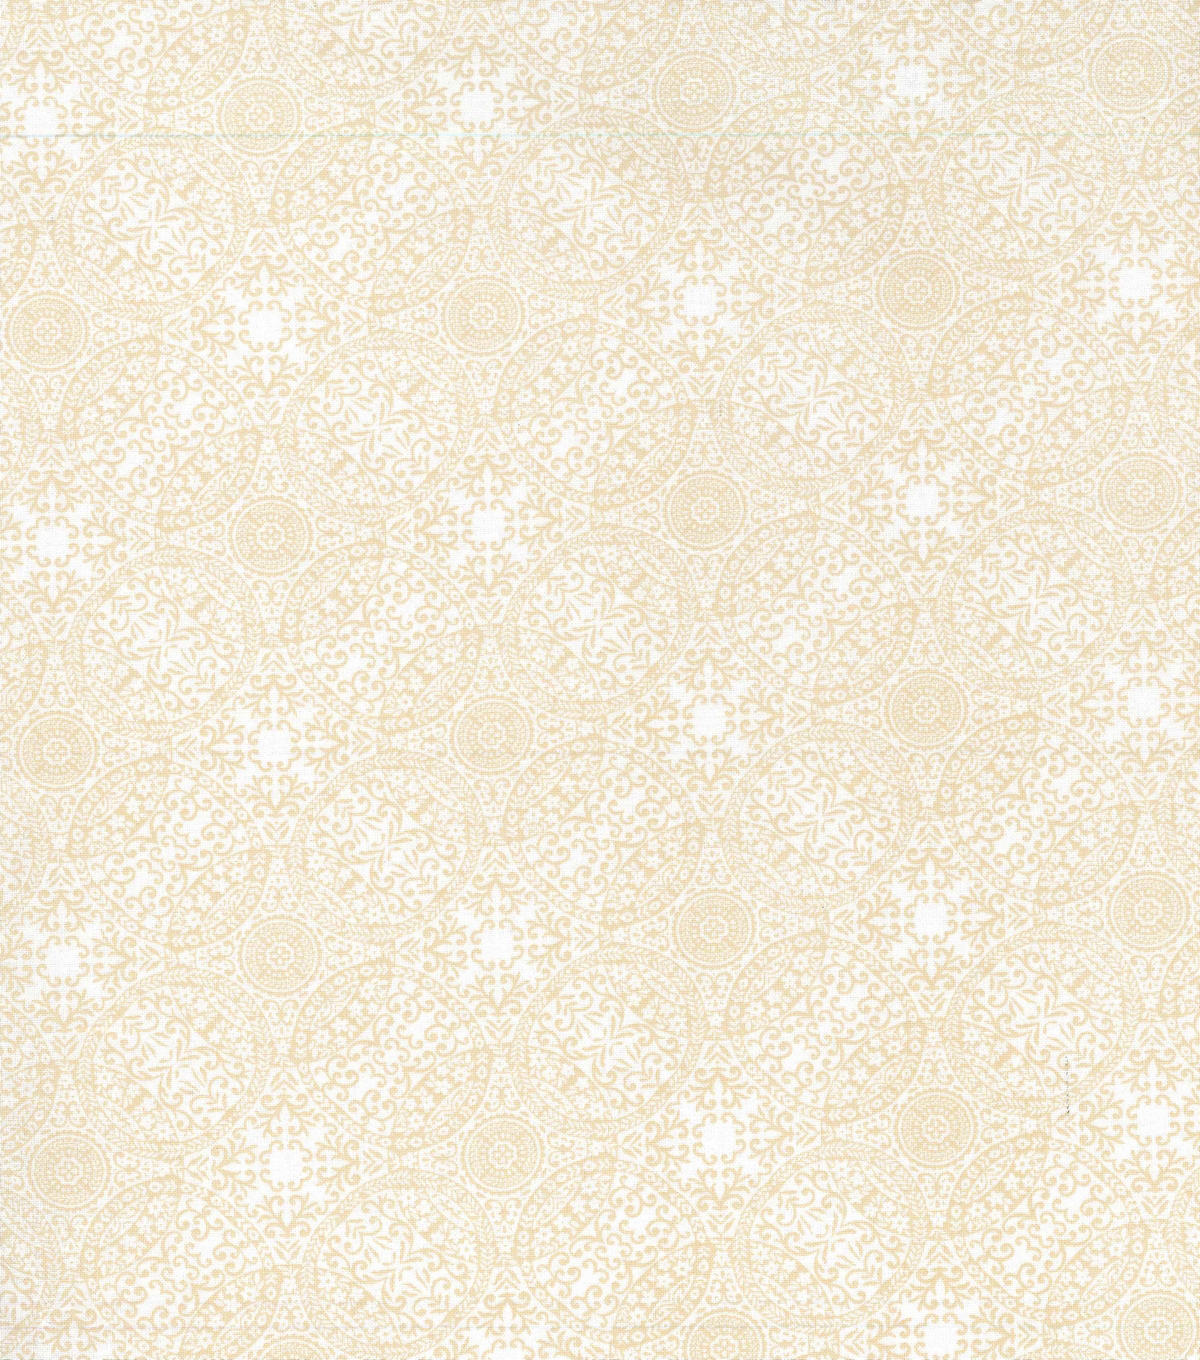 Keepsake Calico Cotton Fabric 43\u0022-Winter White Linked Medallion